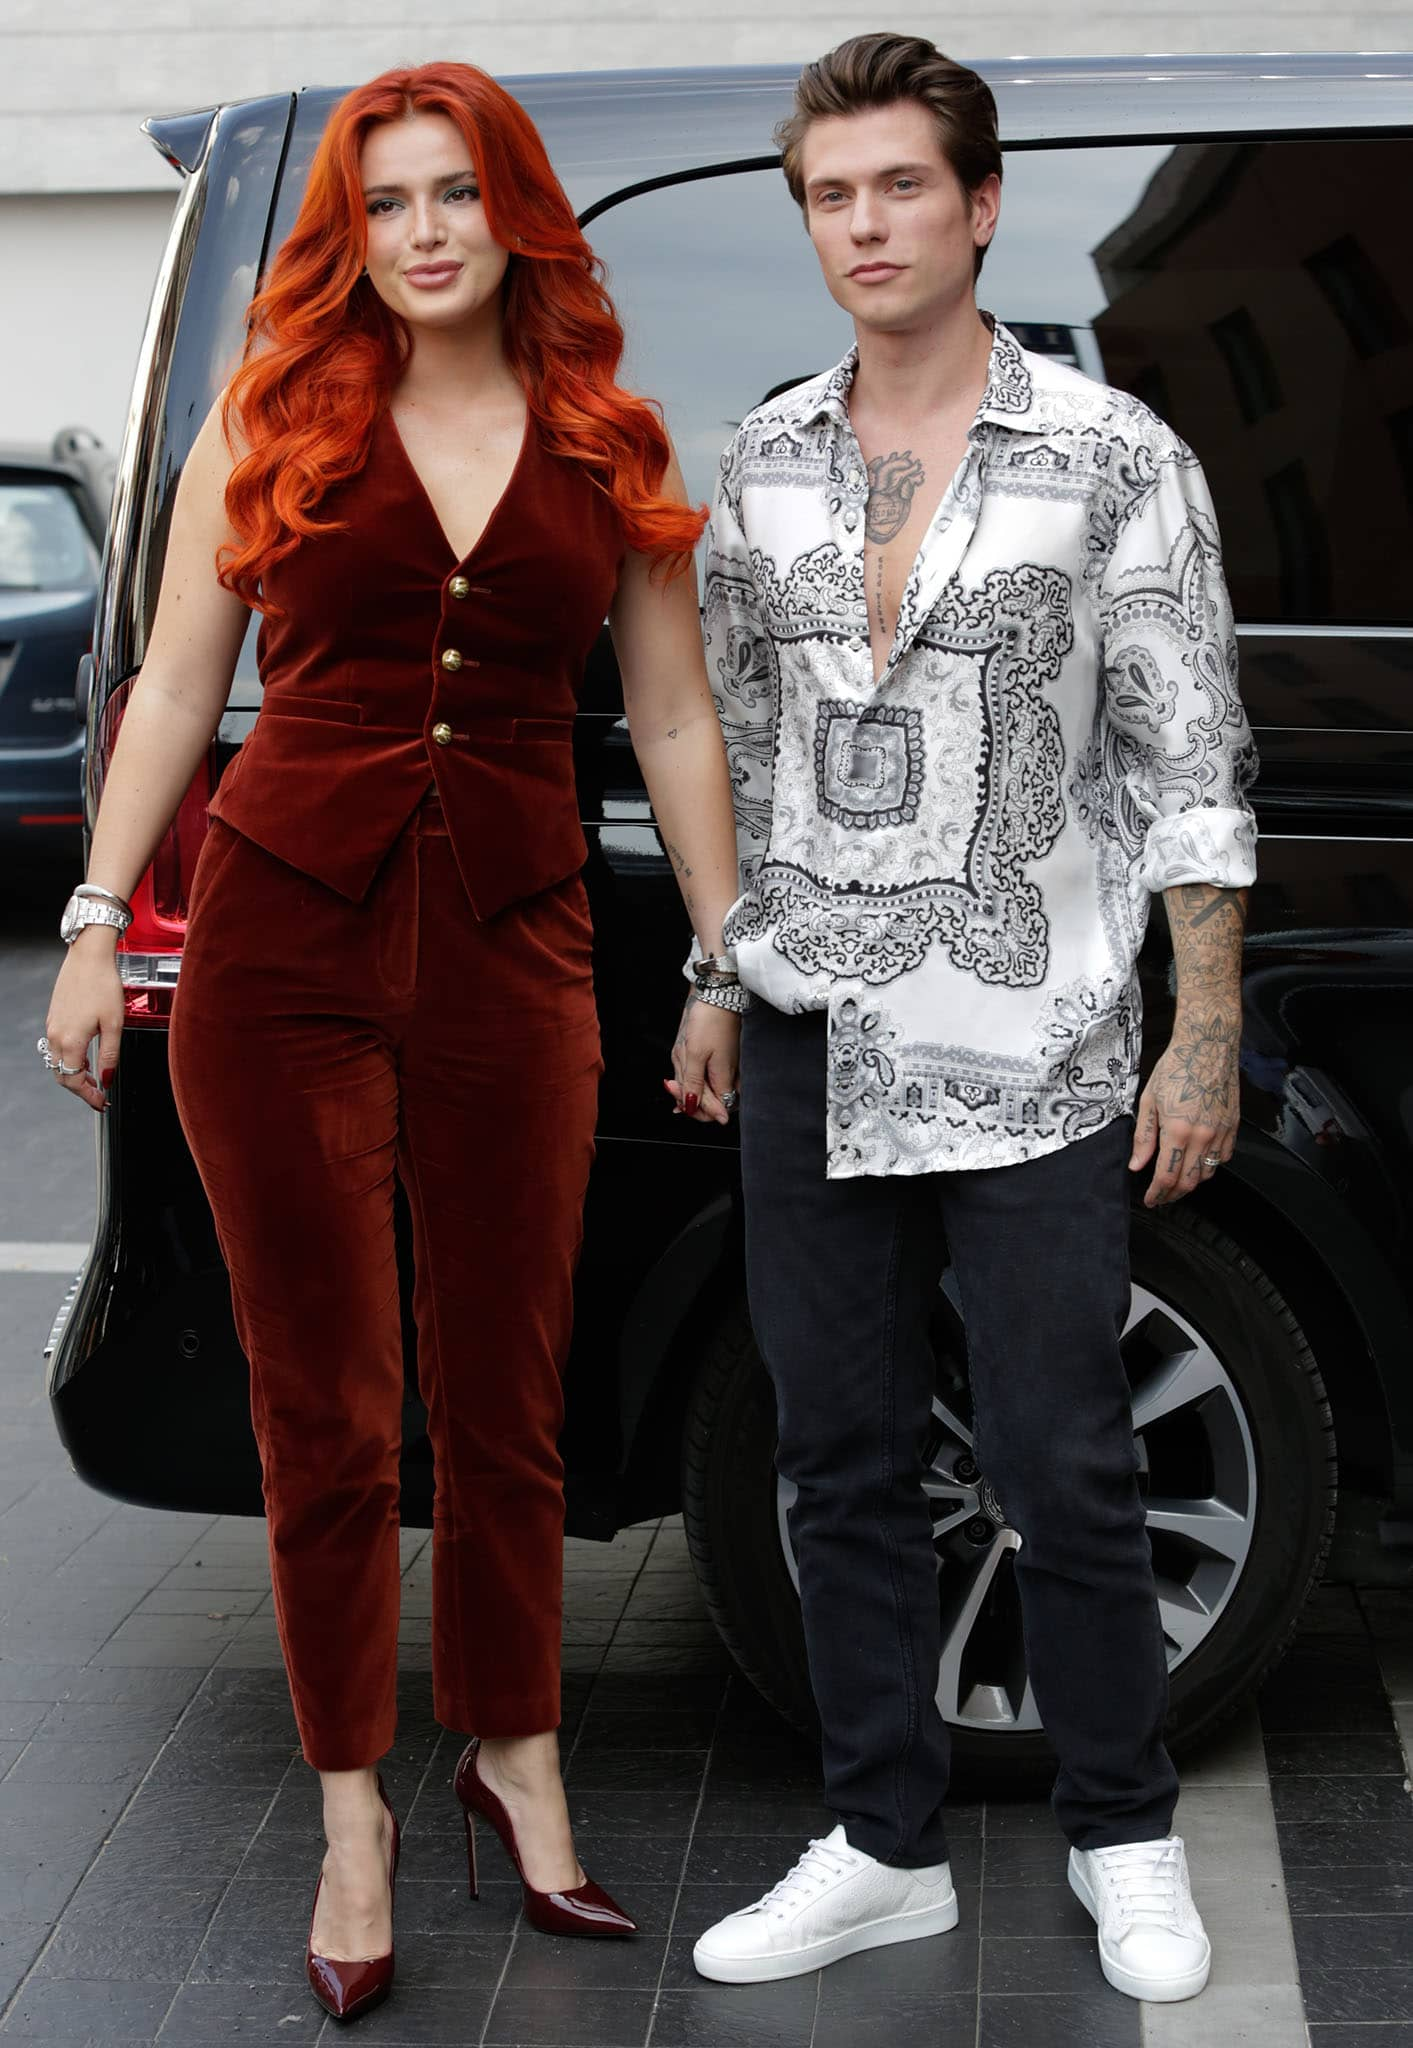 Bella Thorne highlights her figure in an Etro red velvet vest top and cigarette pants, while Benjamin opts for a black-and-white paisley-print shirt with black jeans